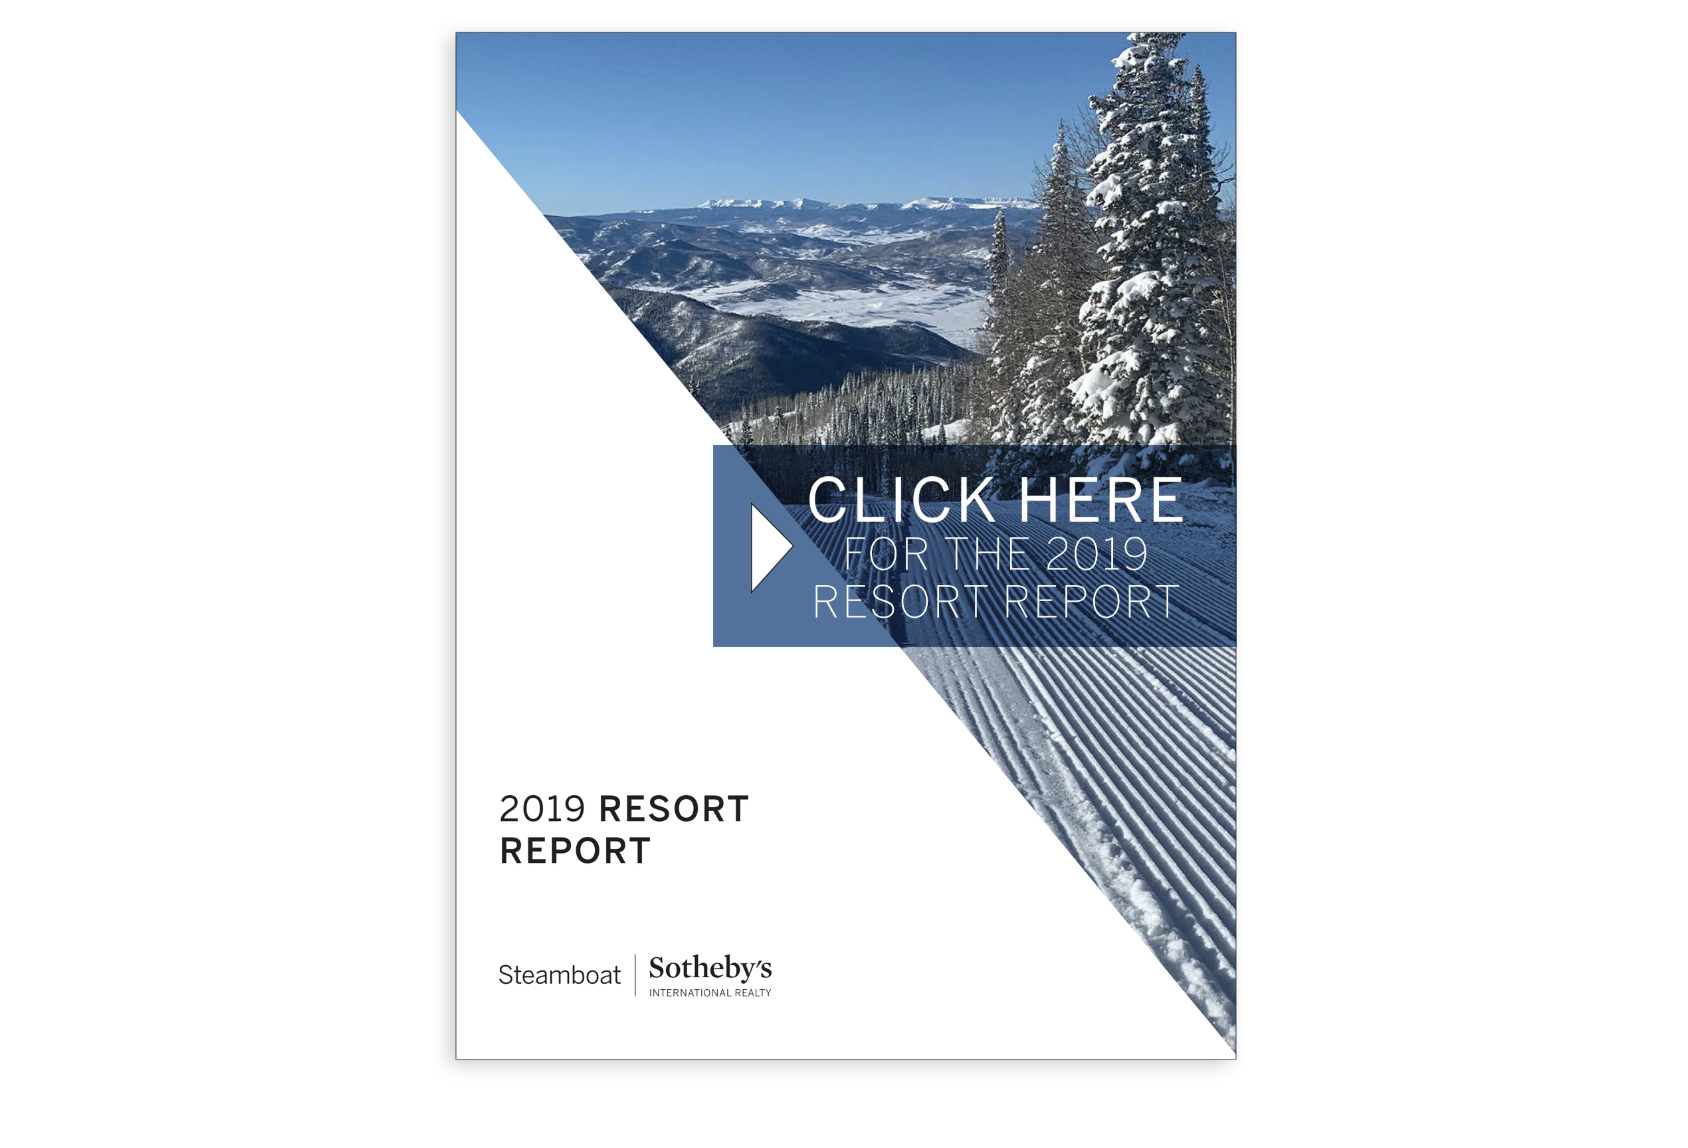 2019 Resort Report